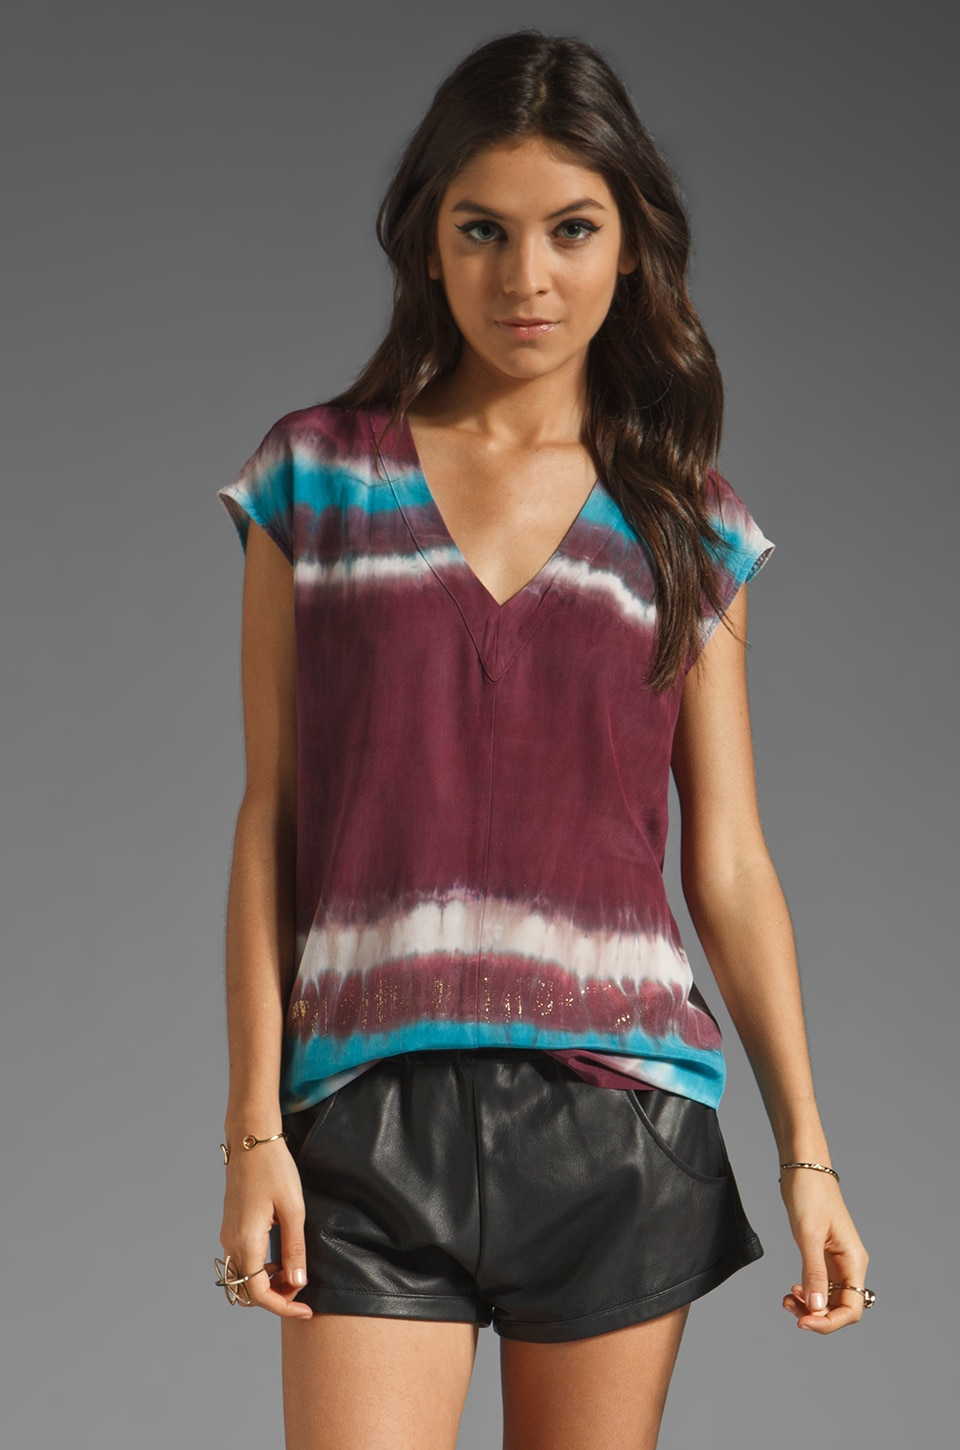 Gypsy 05 Bianca Short Sleeve Top in Burgundy